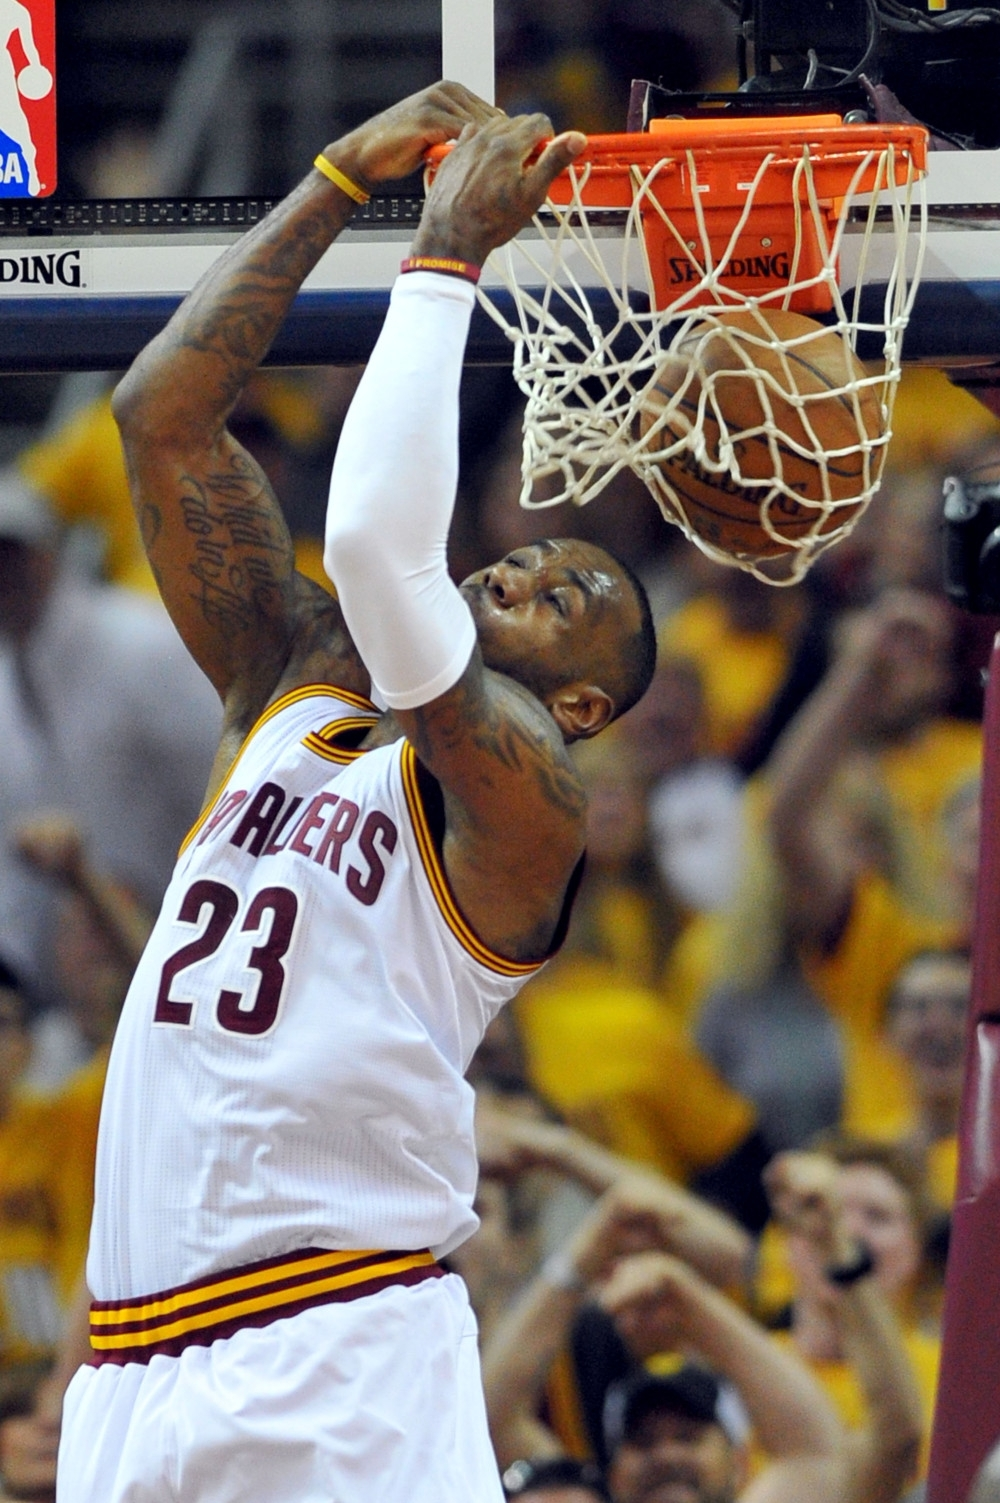 10 Best Pictures Of Lebron James Dunking FULL HD 1080p For ...